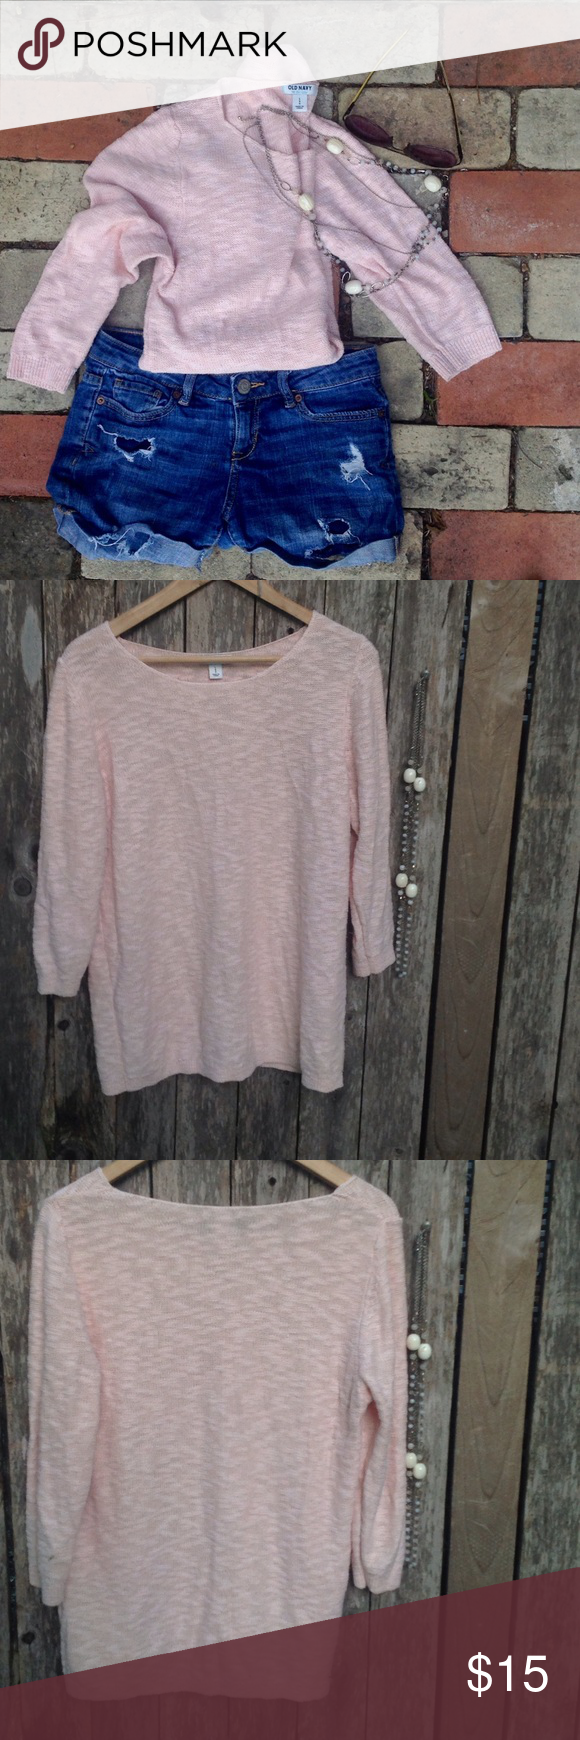 Summer Blush Cable Knit Sweater Very good, pre-owned condition. Slight wear near seams. No pulls. Old Navy Sweaters Crew & Scoop Necks